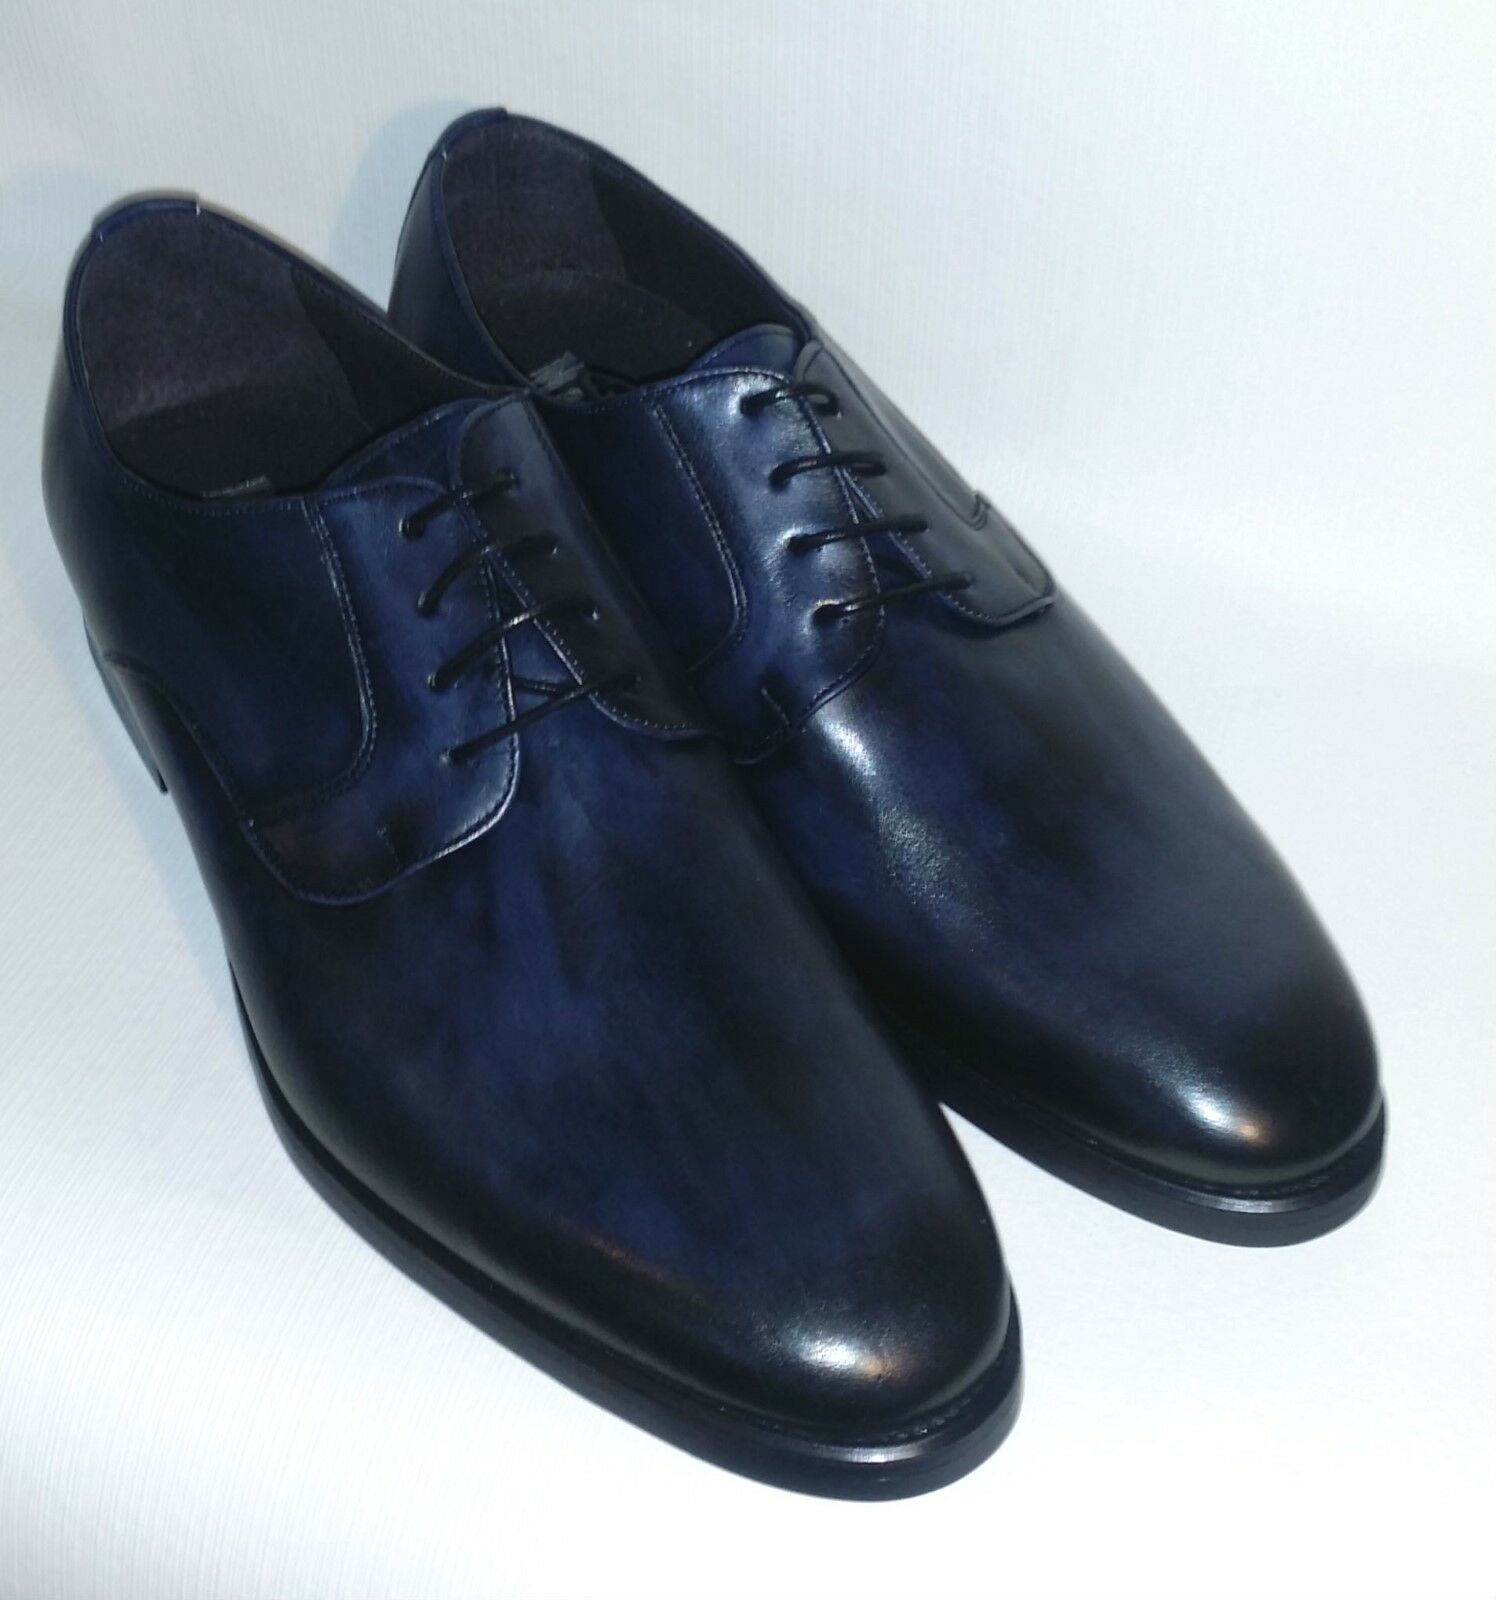 Men's Navy Blue Spanish Leather Shoes Shoes Leather c63c1a